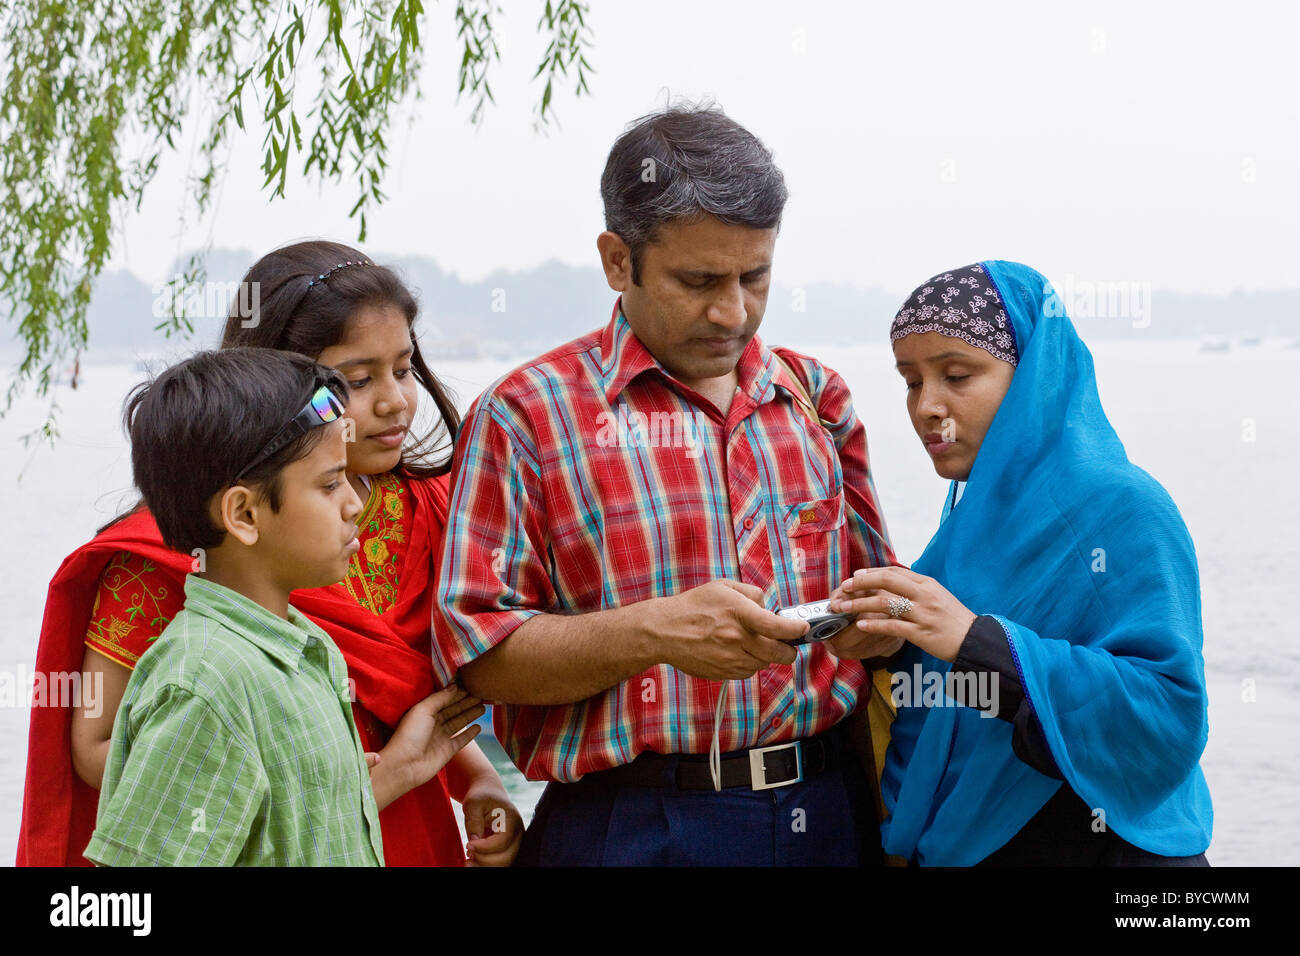 Family of tourists from Bangladesh at the New Summer Palace, Beijing, People's Republic of China. JMH4794 - Stock Image